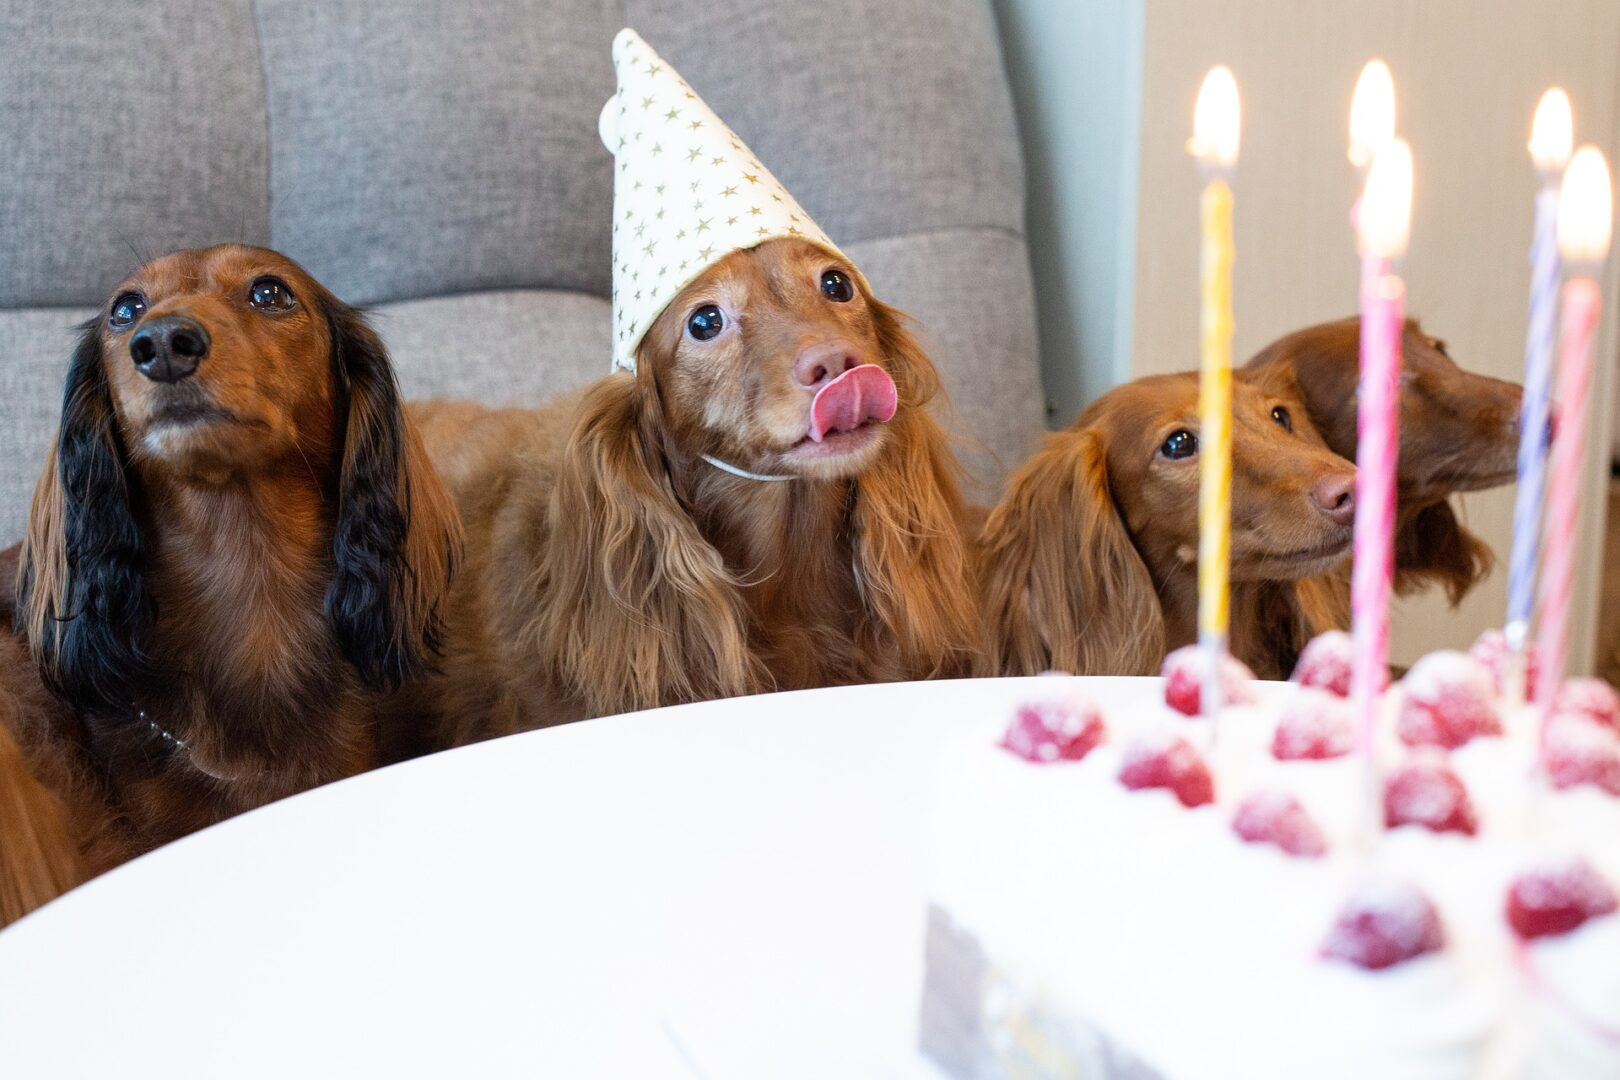 Dogs having a Party